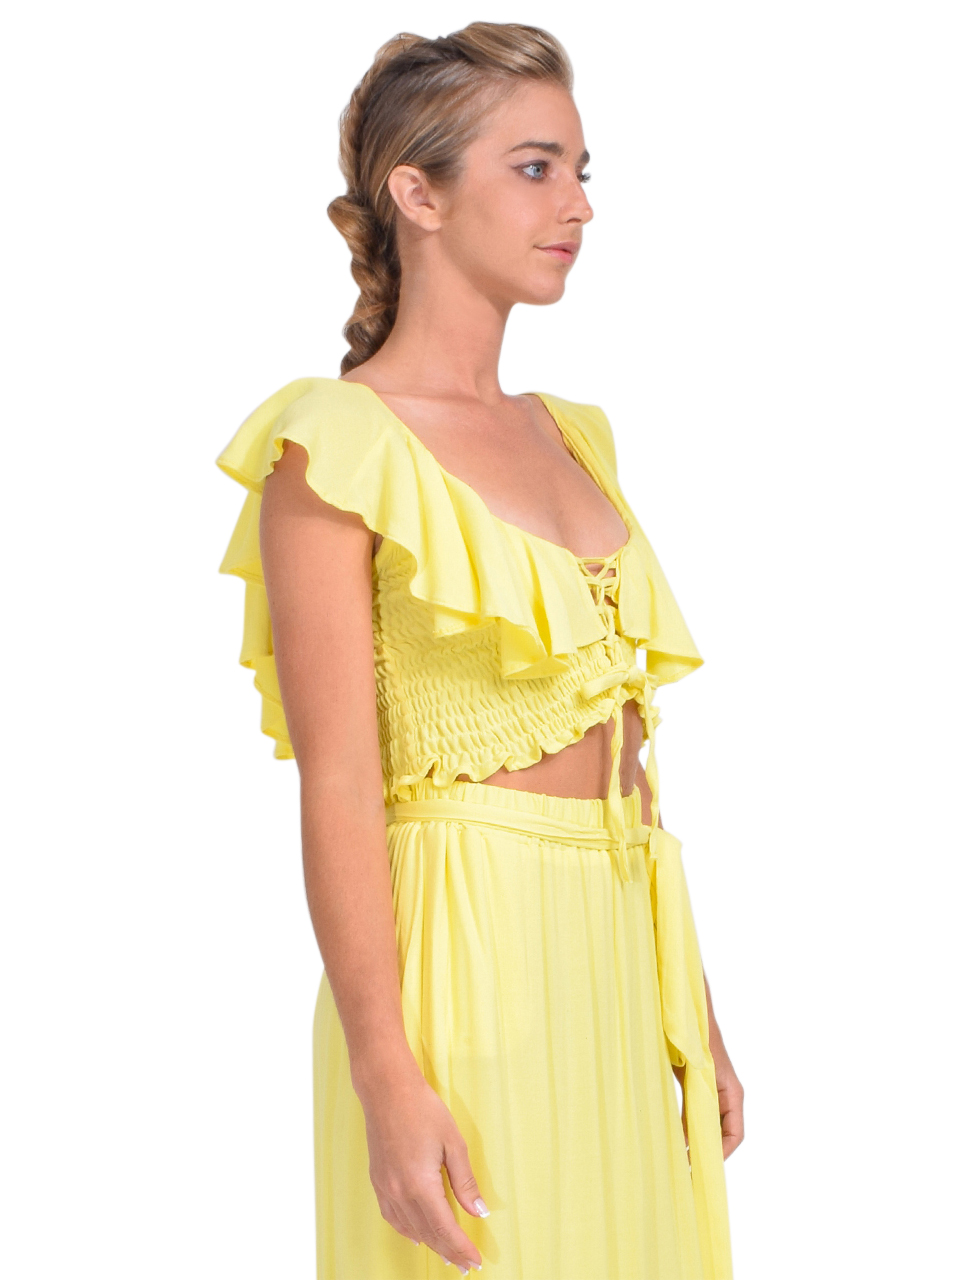 KASIA Sifnos Crop Top in Yellow Side View 1